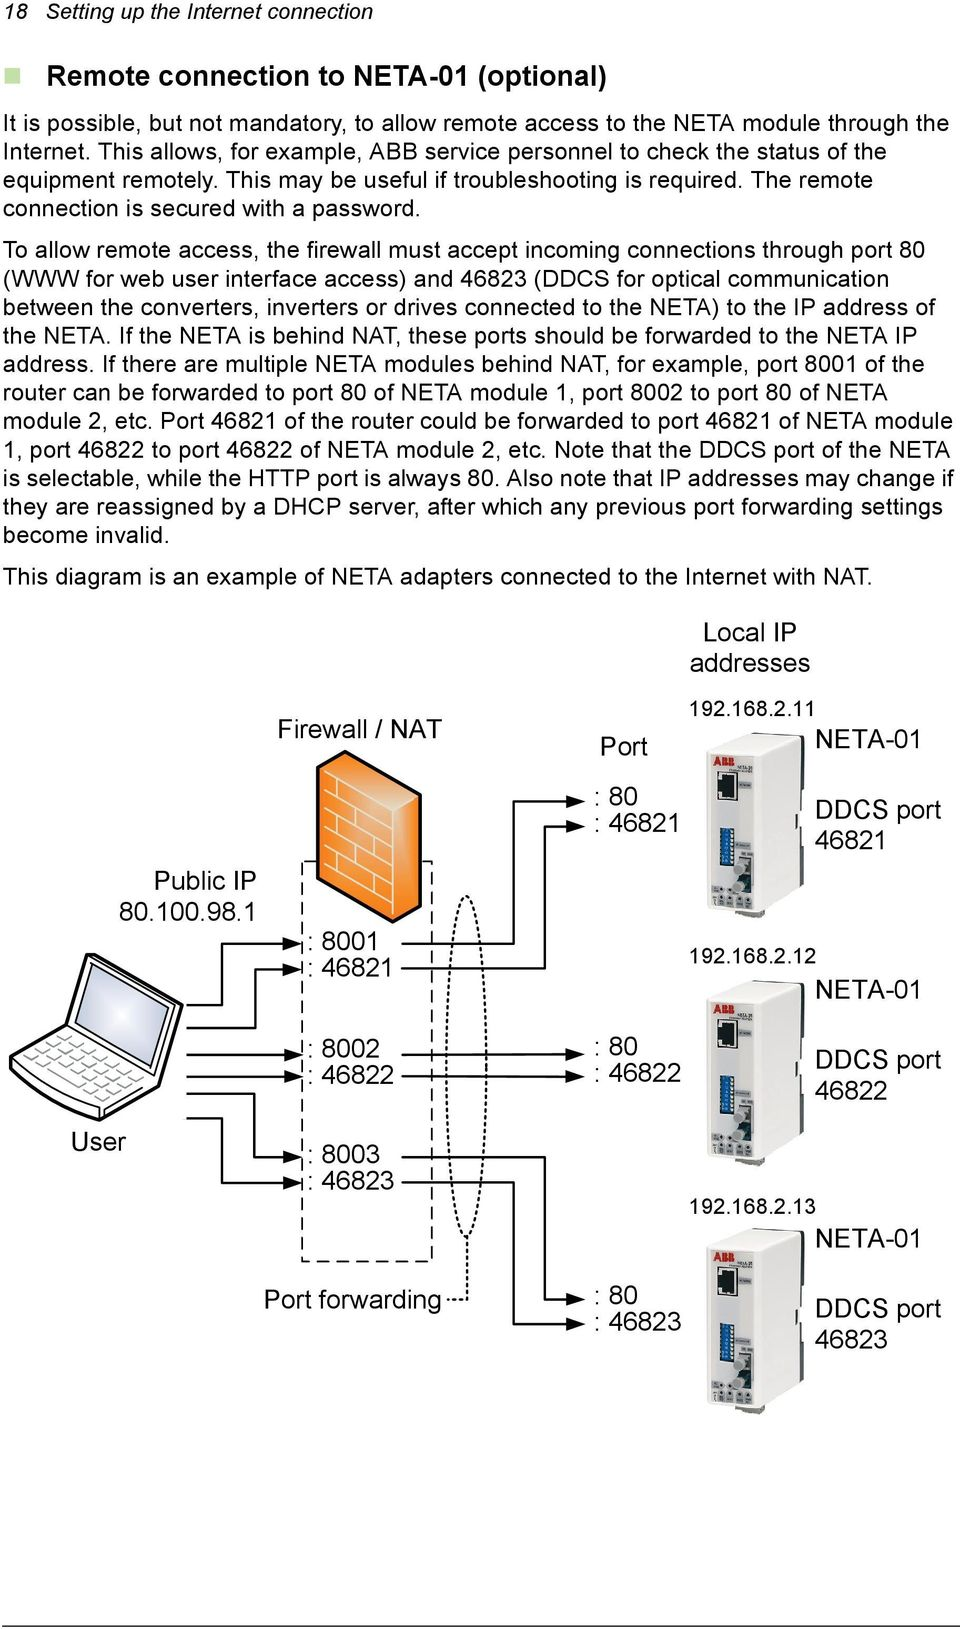 To allow remote access, the firewall must accept incoming connections through port 80 (WWW for web user interface access) and 46823 (DDCS for optical communication between the converters, inverters